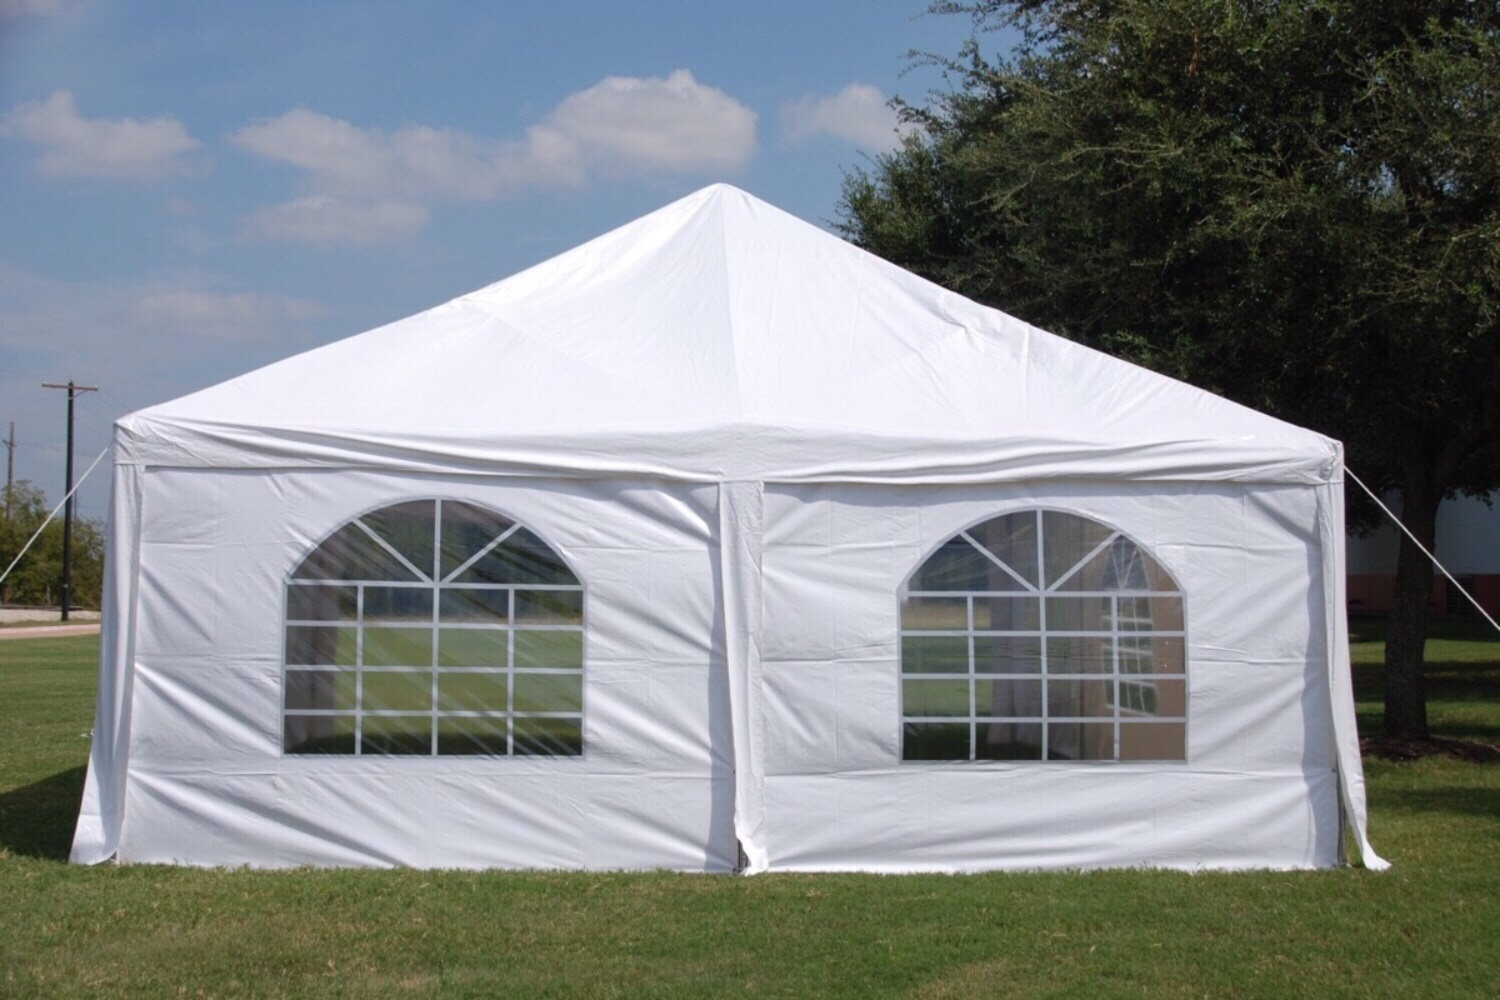 40u0027x20u0027 PVC Frame Tent u2022 Long Storage Bag u2022 Short Storage Bag & 30u0027x20u0027 40u0027x20u0027 PVC Frame Tent Party Wedding Canopy - Carry Bag ...